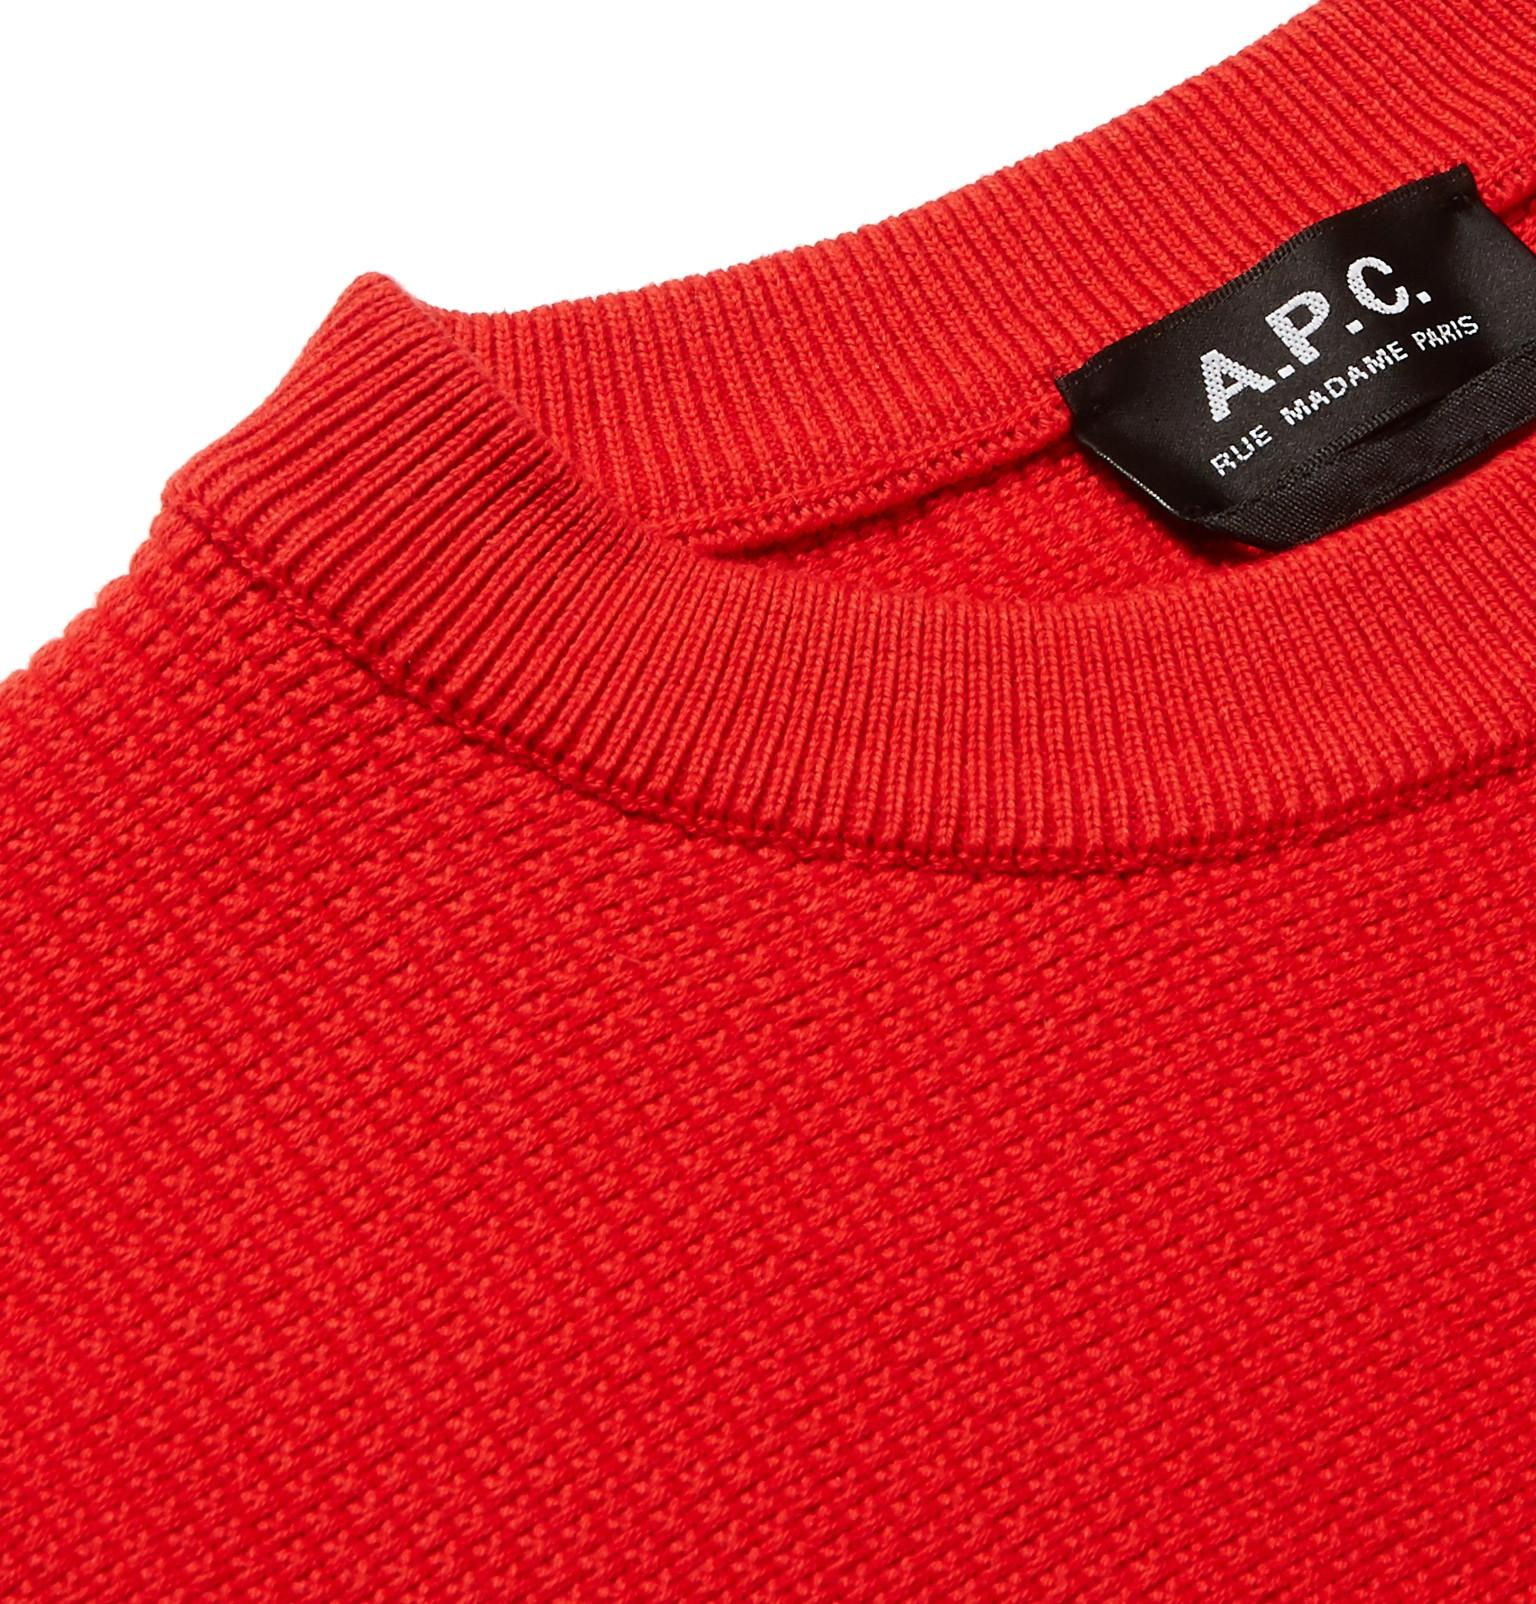 For In Textured Sweater p Red Men c Lyst Marvin Cotton A qH0zwz